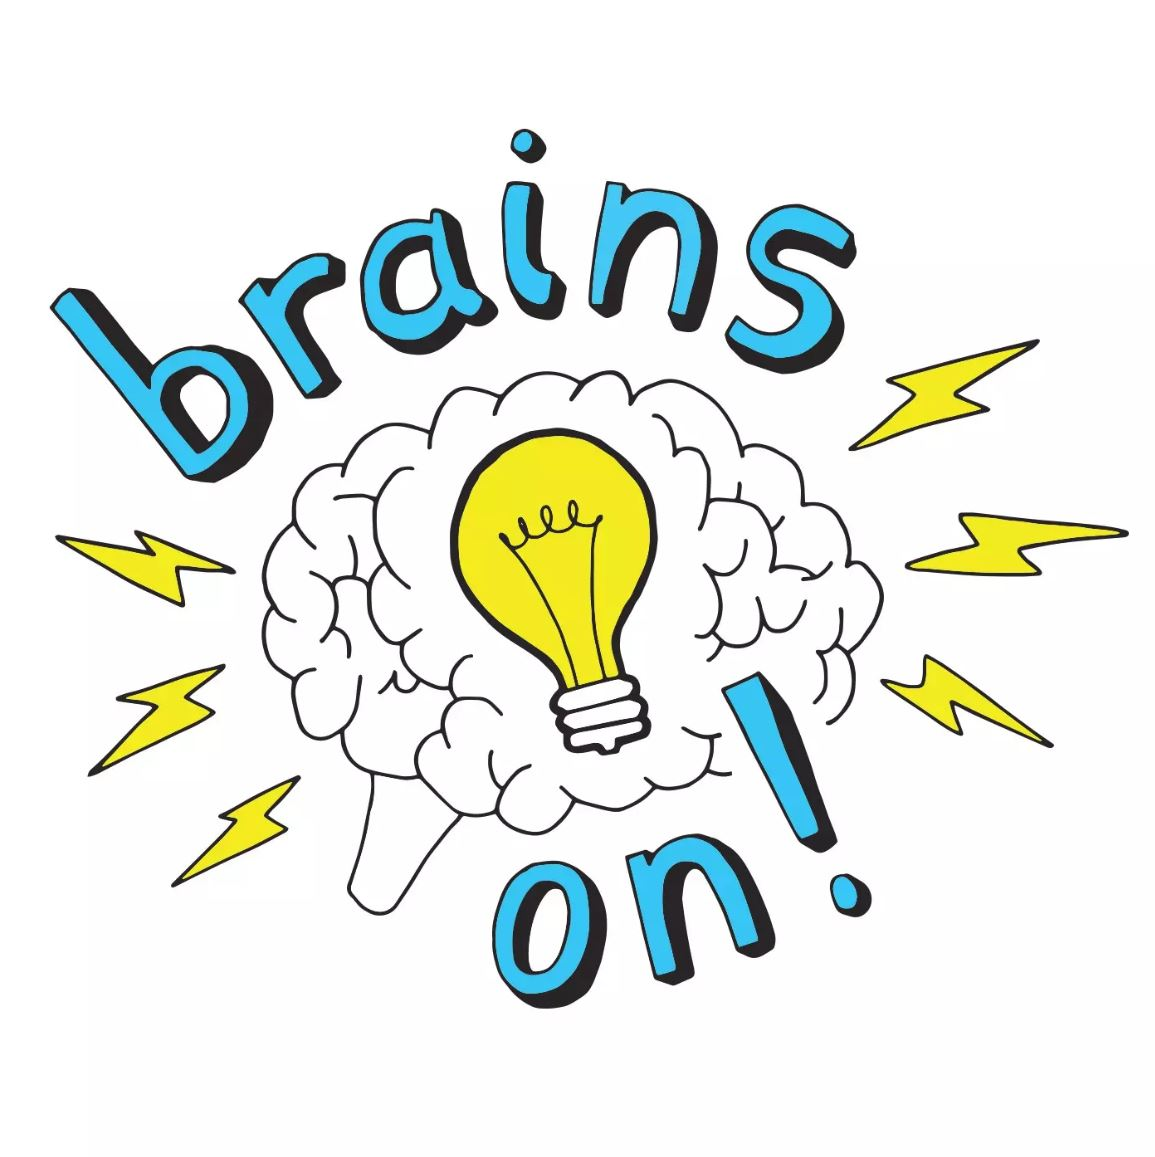 Brains On! - This is really the only chlidren's podcast we listen to, so I could use your recs here! Any topic involving animals is a favorite, and I particularly liked listening to this one on the affects of screens and their addictive nature together.